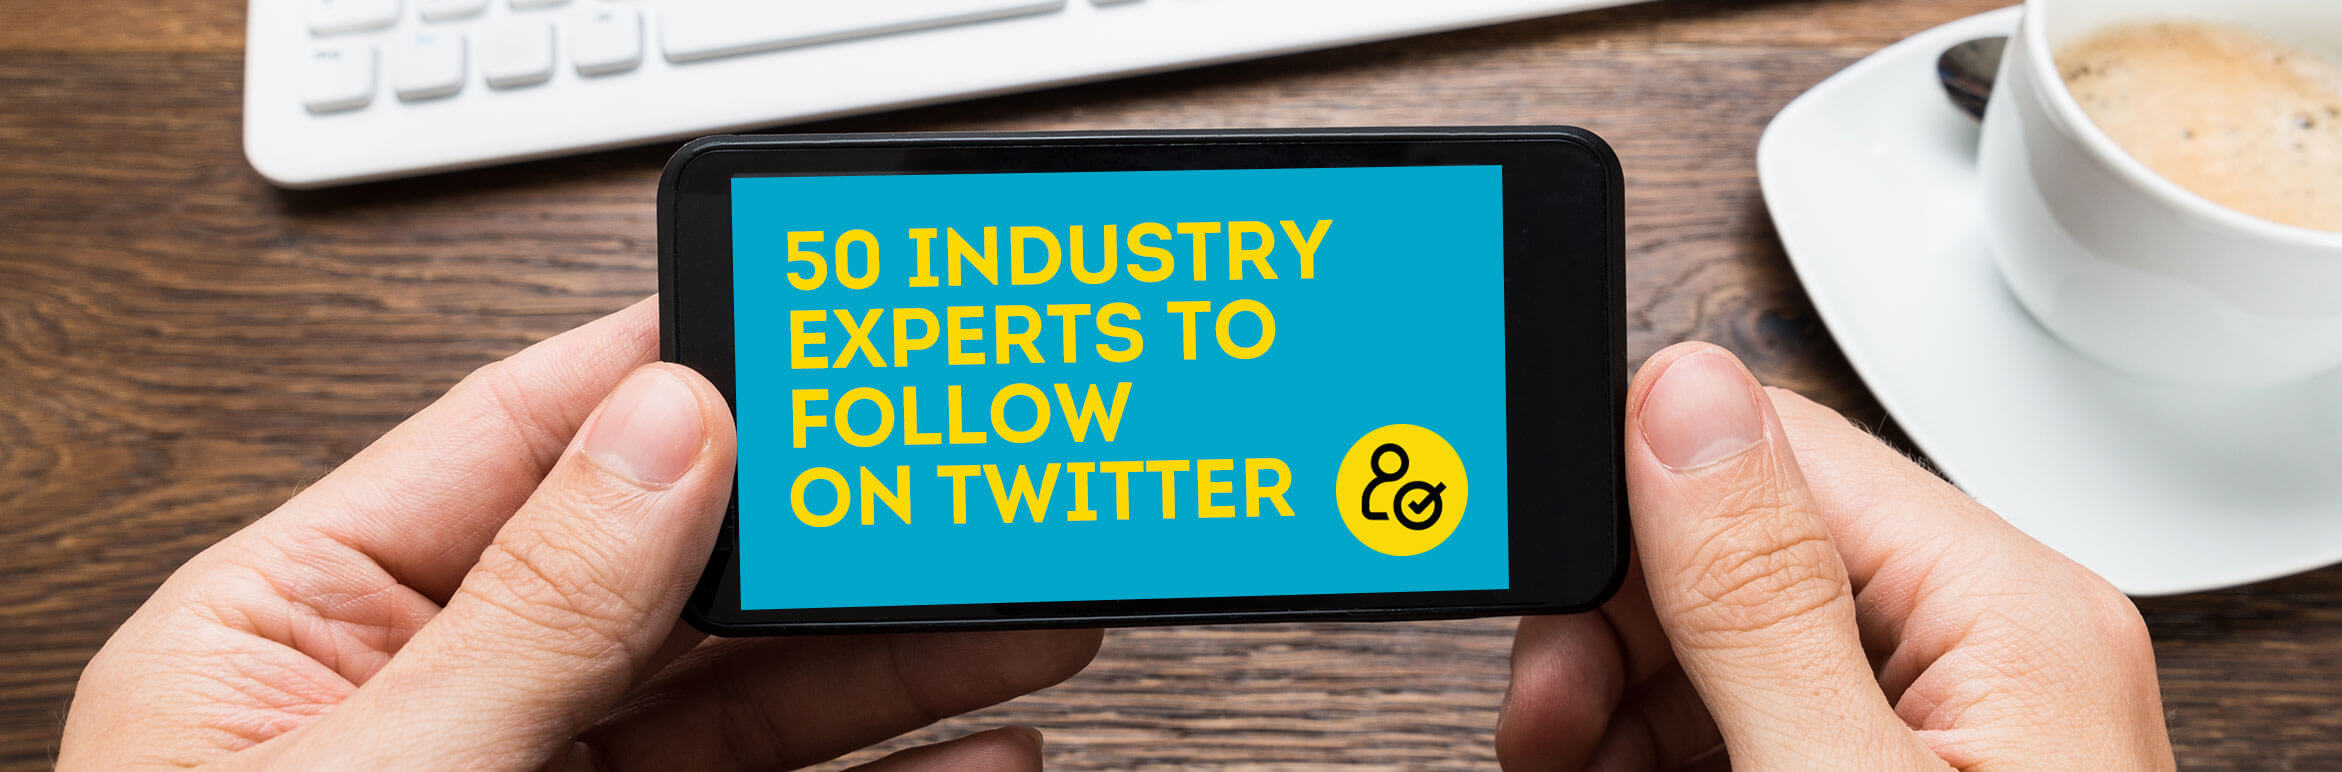 50 rental property industry experts to follow on twitter